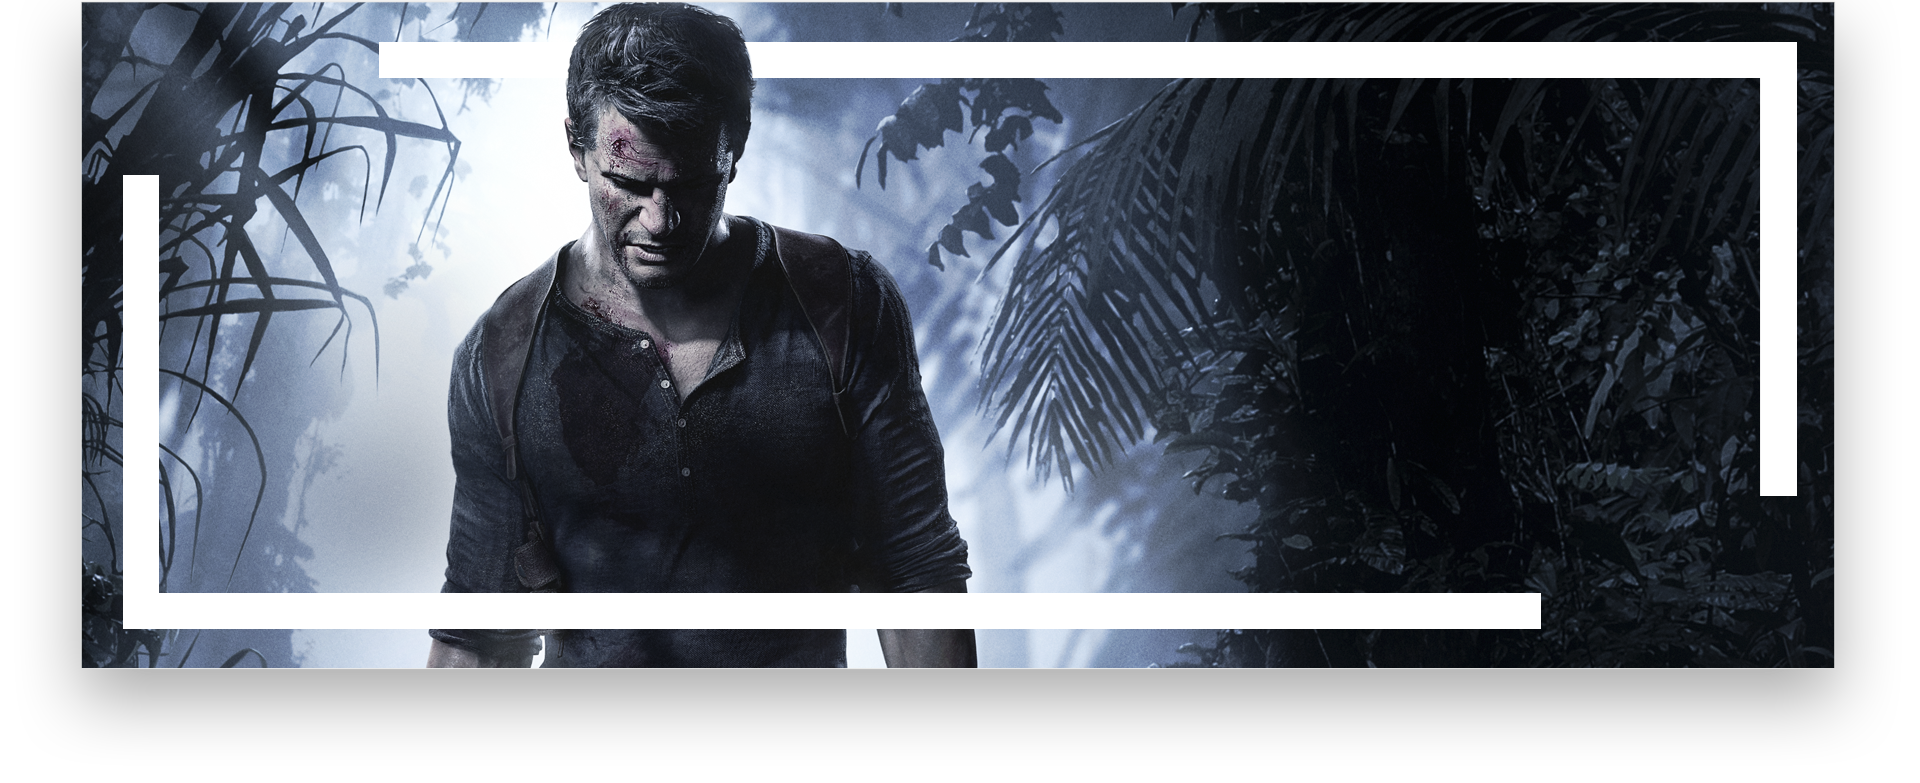 Uncharted 4 key art